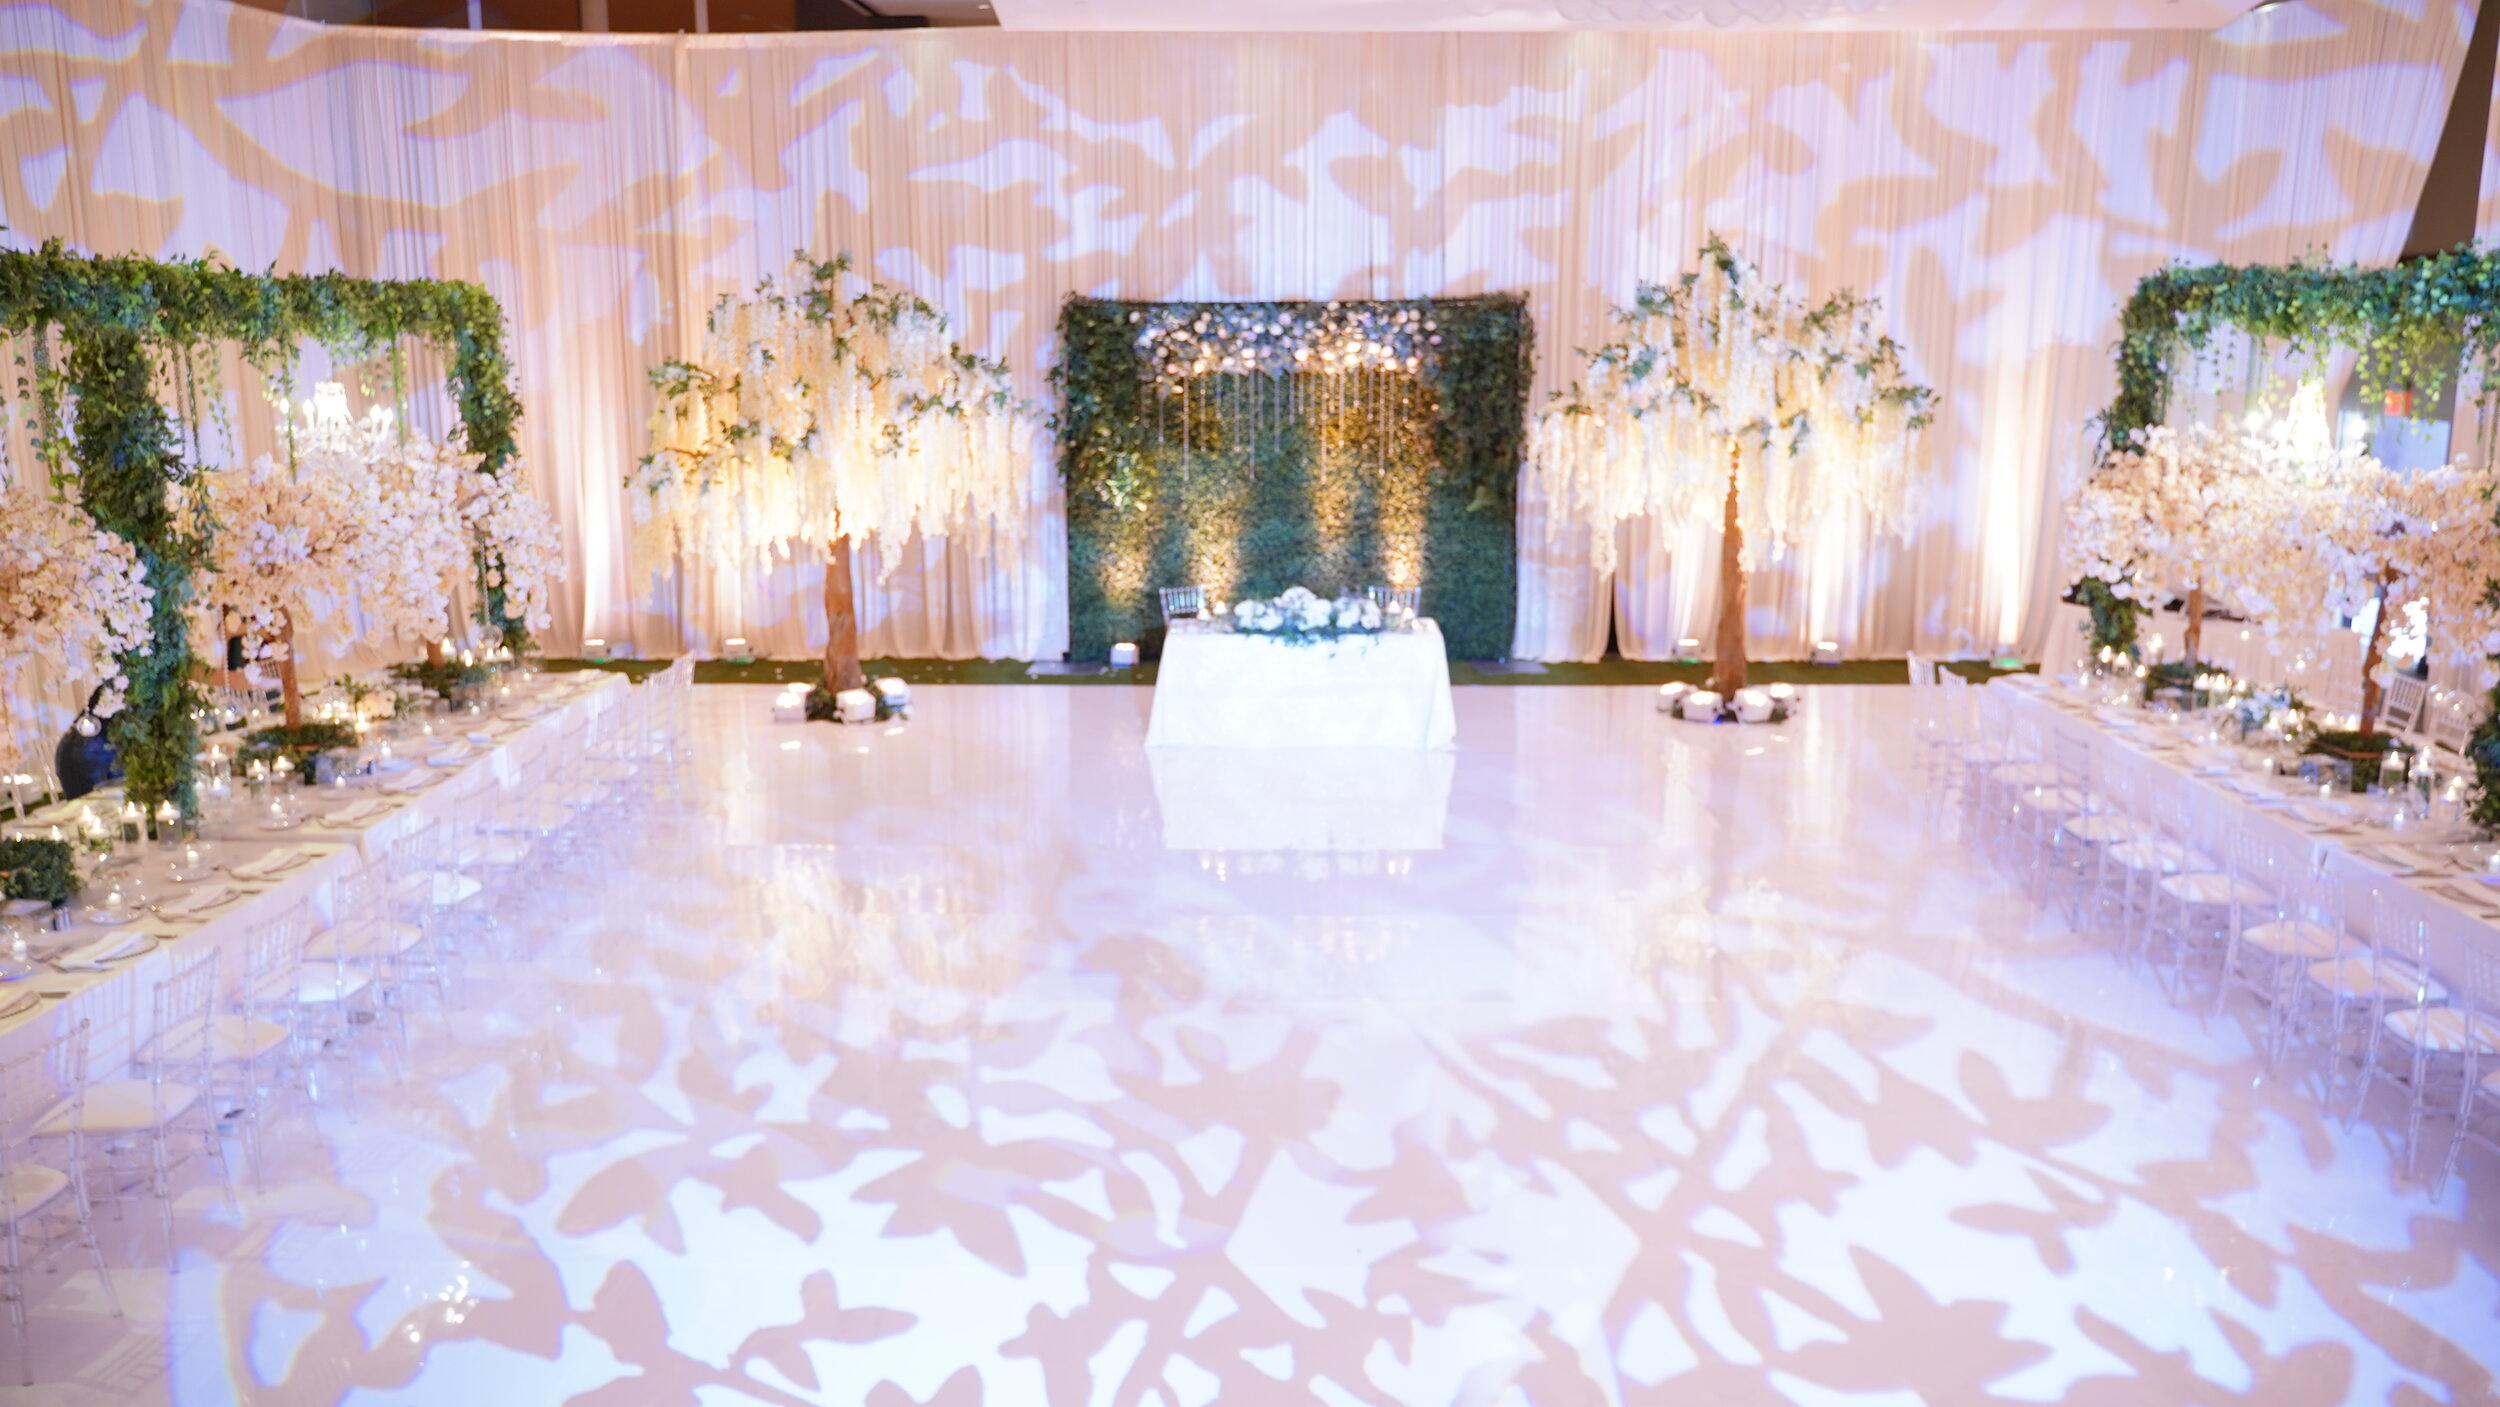 Chicago Wedding Decoration Tent Rental Chairs Table Rental Yard Greeting Rental I White Dance Floor Wall Draping Ceiling Draping Wedding Centerpieces Satin Chair Event